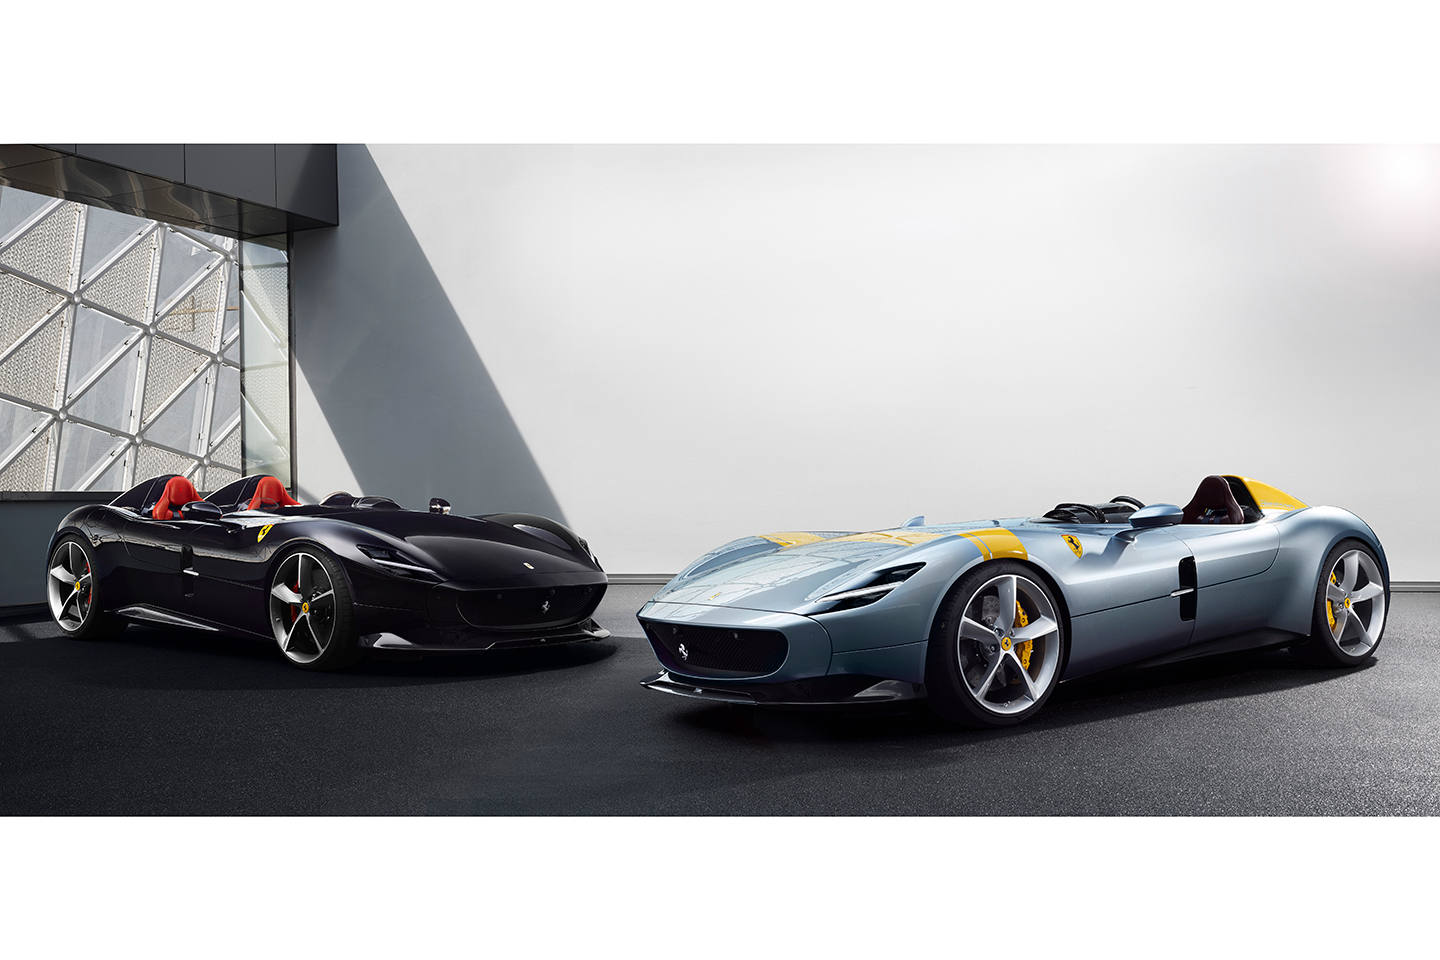 Ferrari Monza SP1 et SP2 | Photo: Ferrari